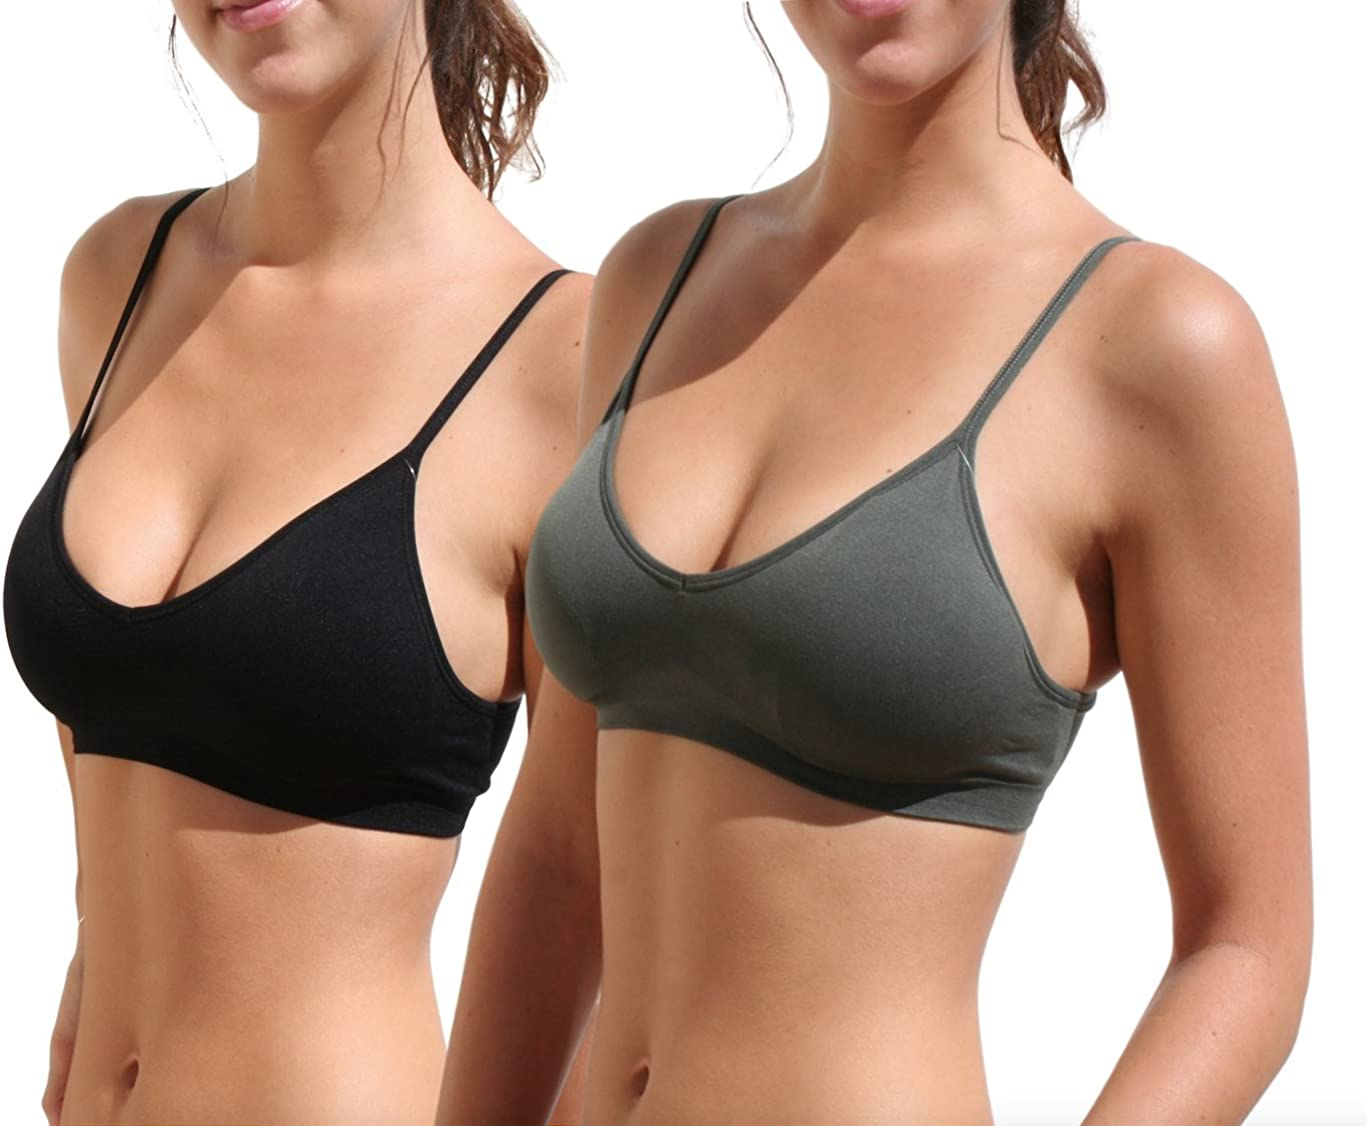 Max 71% OFF Blue 55 Women's Bralette Wireless Padded Bra Challenge the lowest price of Japan ☆ Top B Sexy Everyday